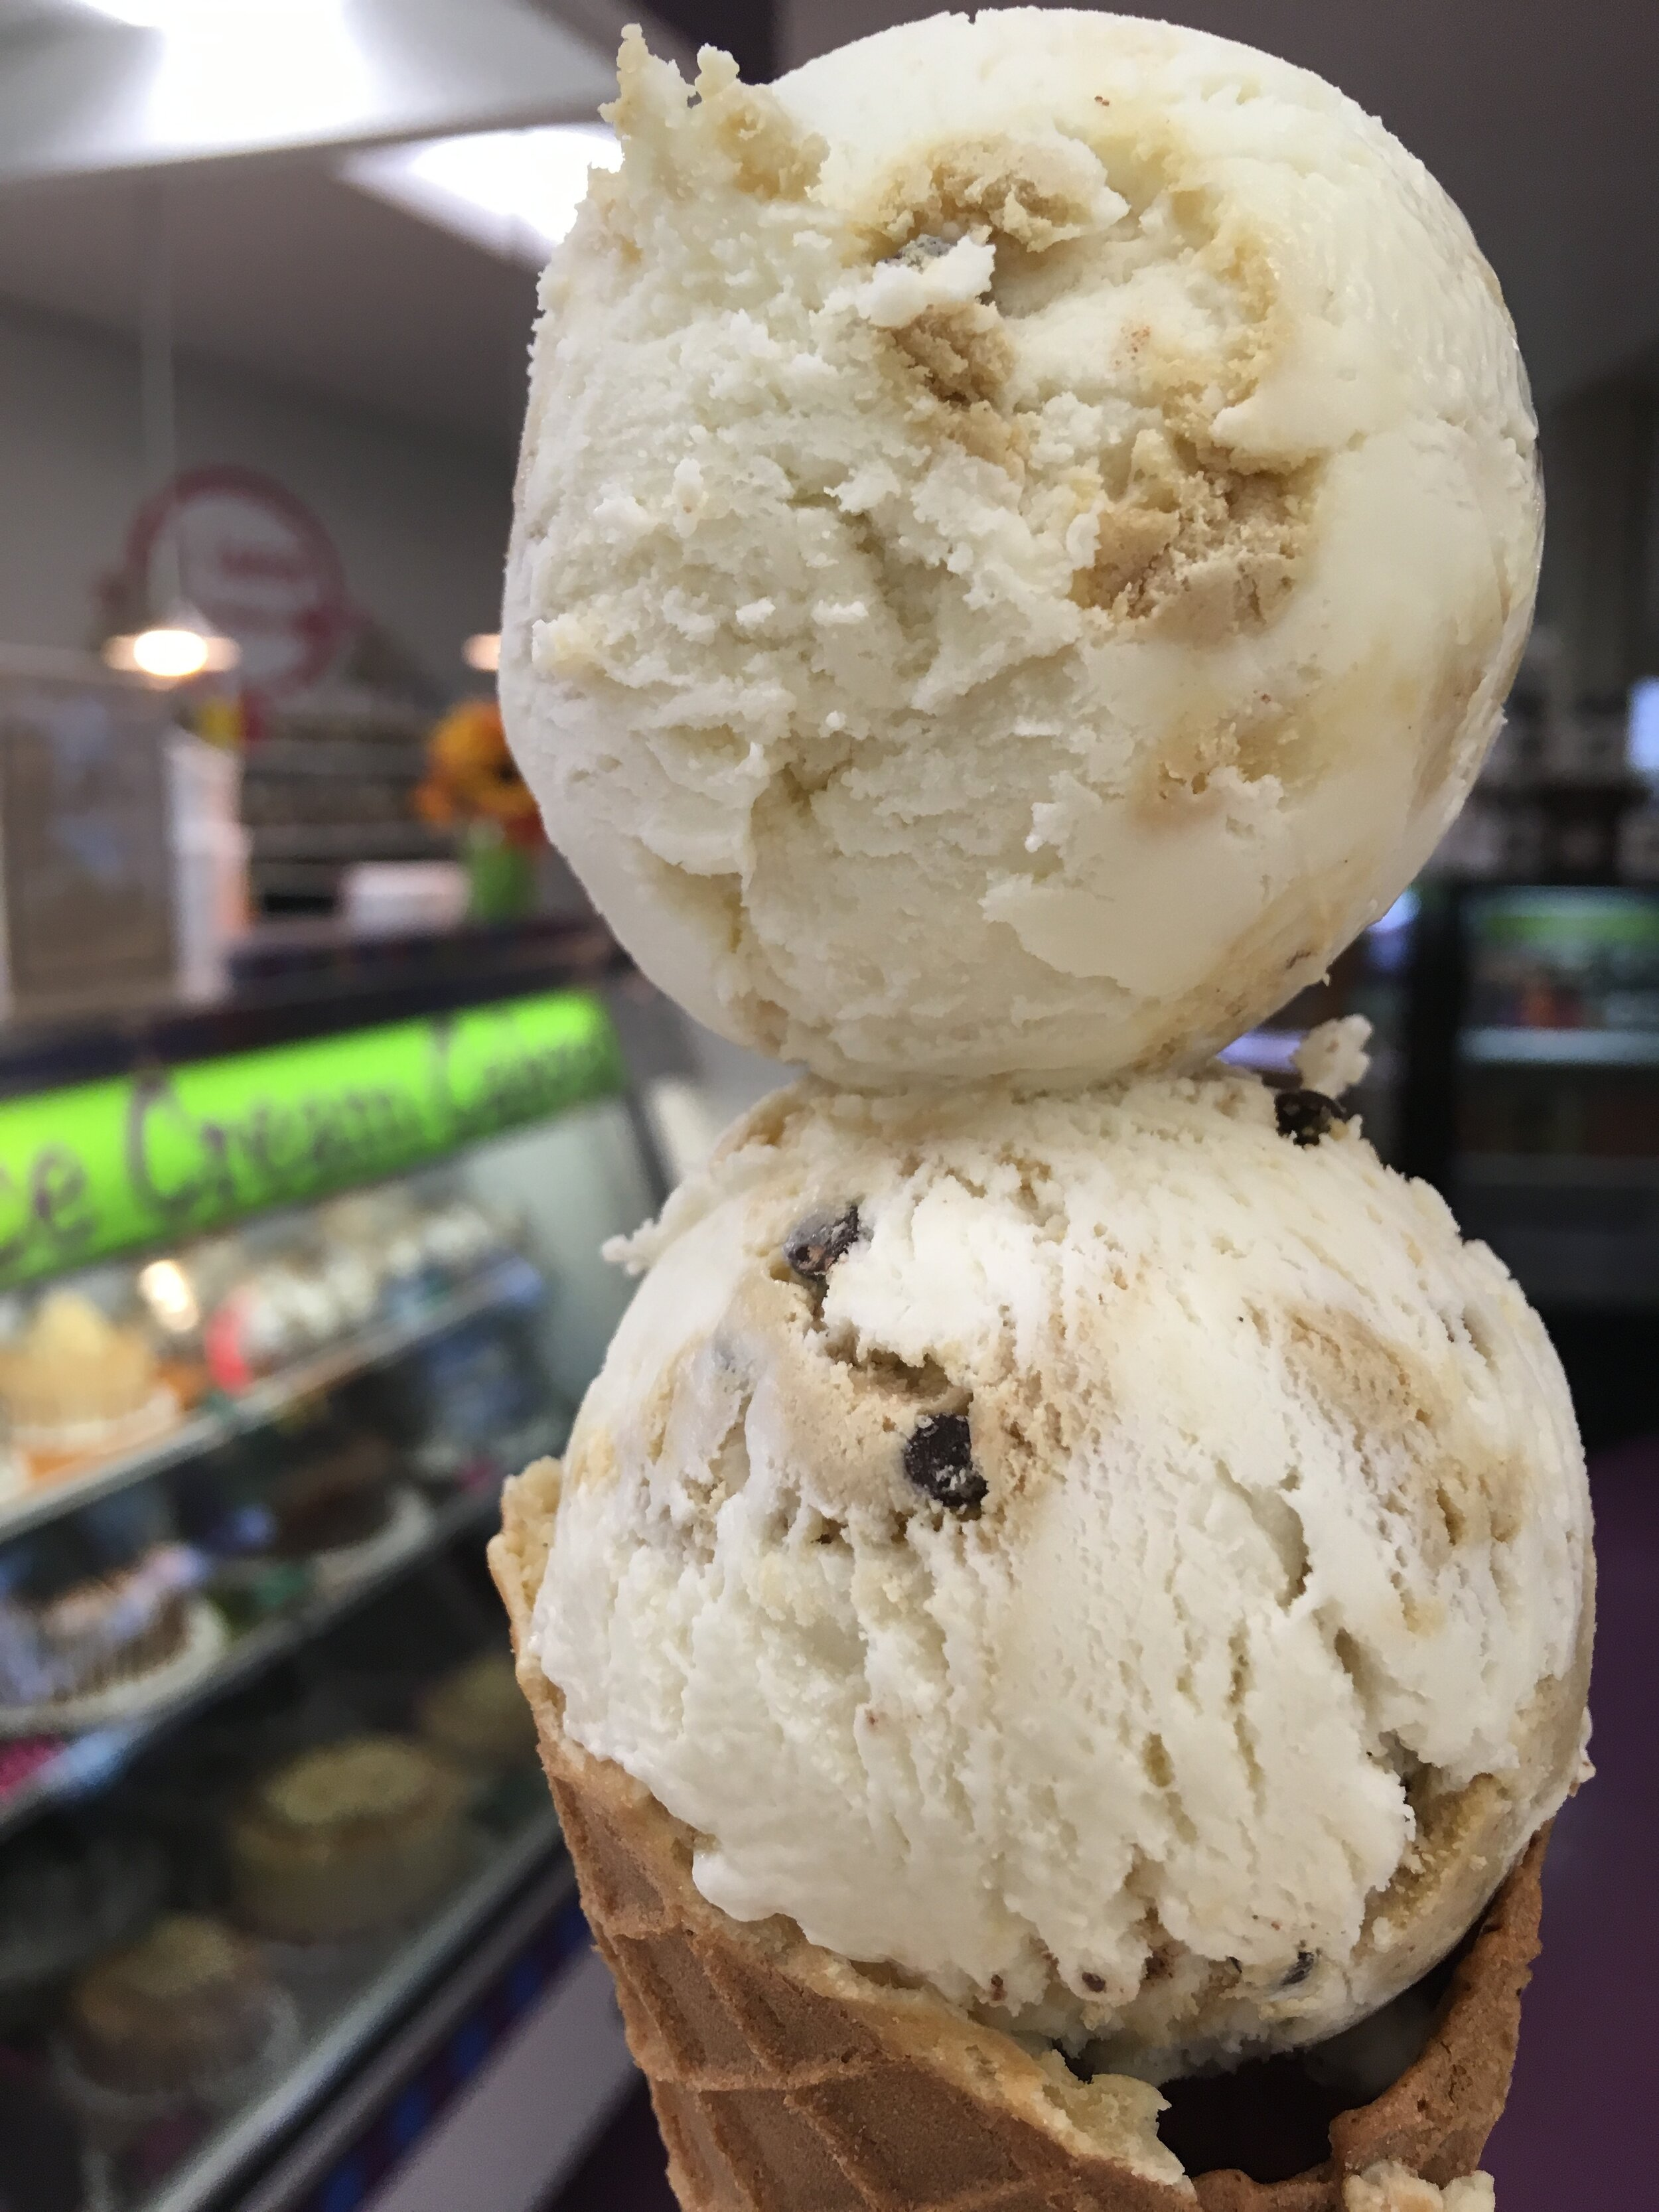 COOKIE DOUGH - Our vanilla ice cream with lots of chocolate chip cookie dough pieces mixed throughout. Yes, I'll have cookie dough please…